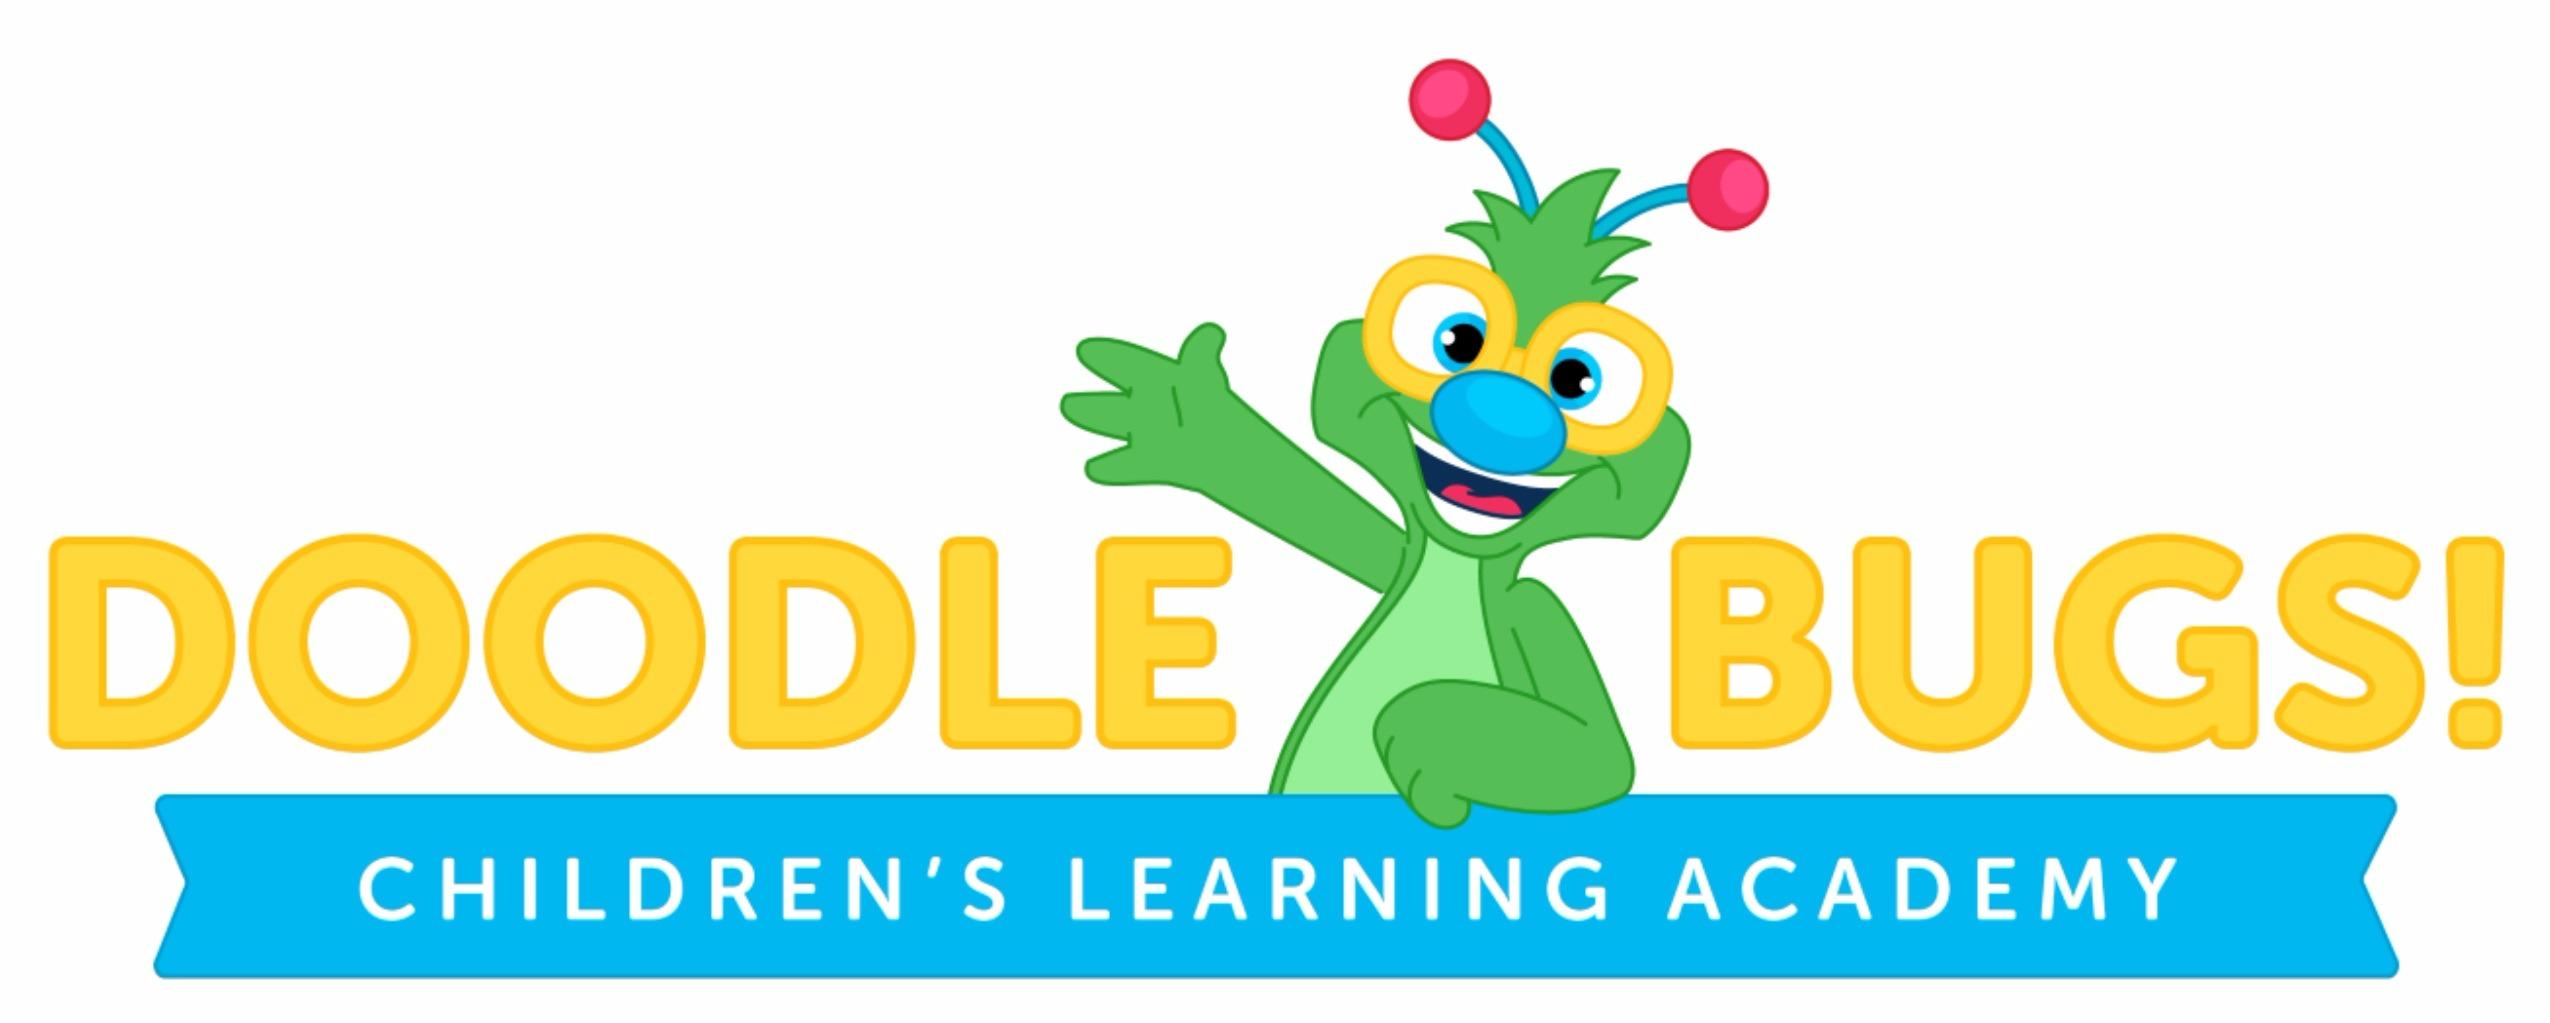 Doodle Bugs! Children's Learning Academy